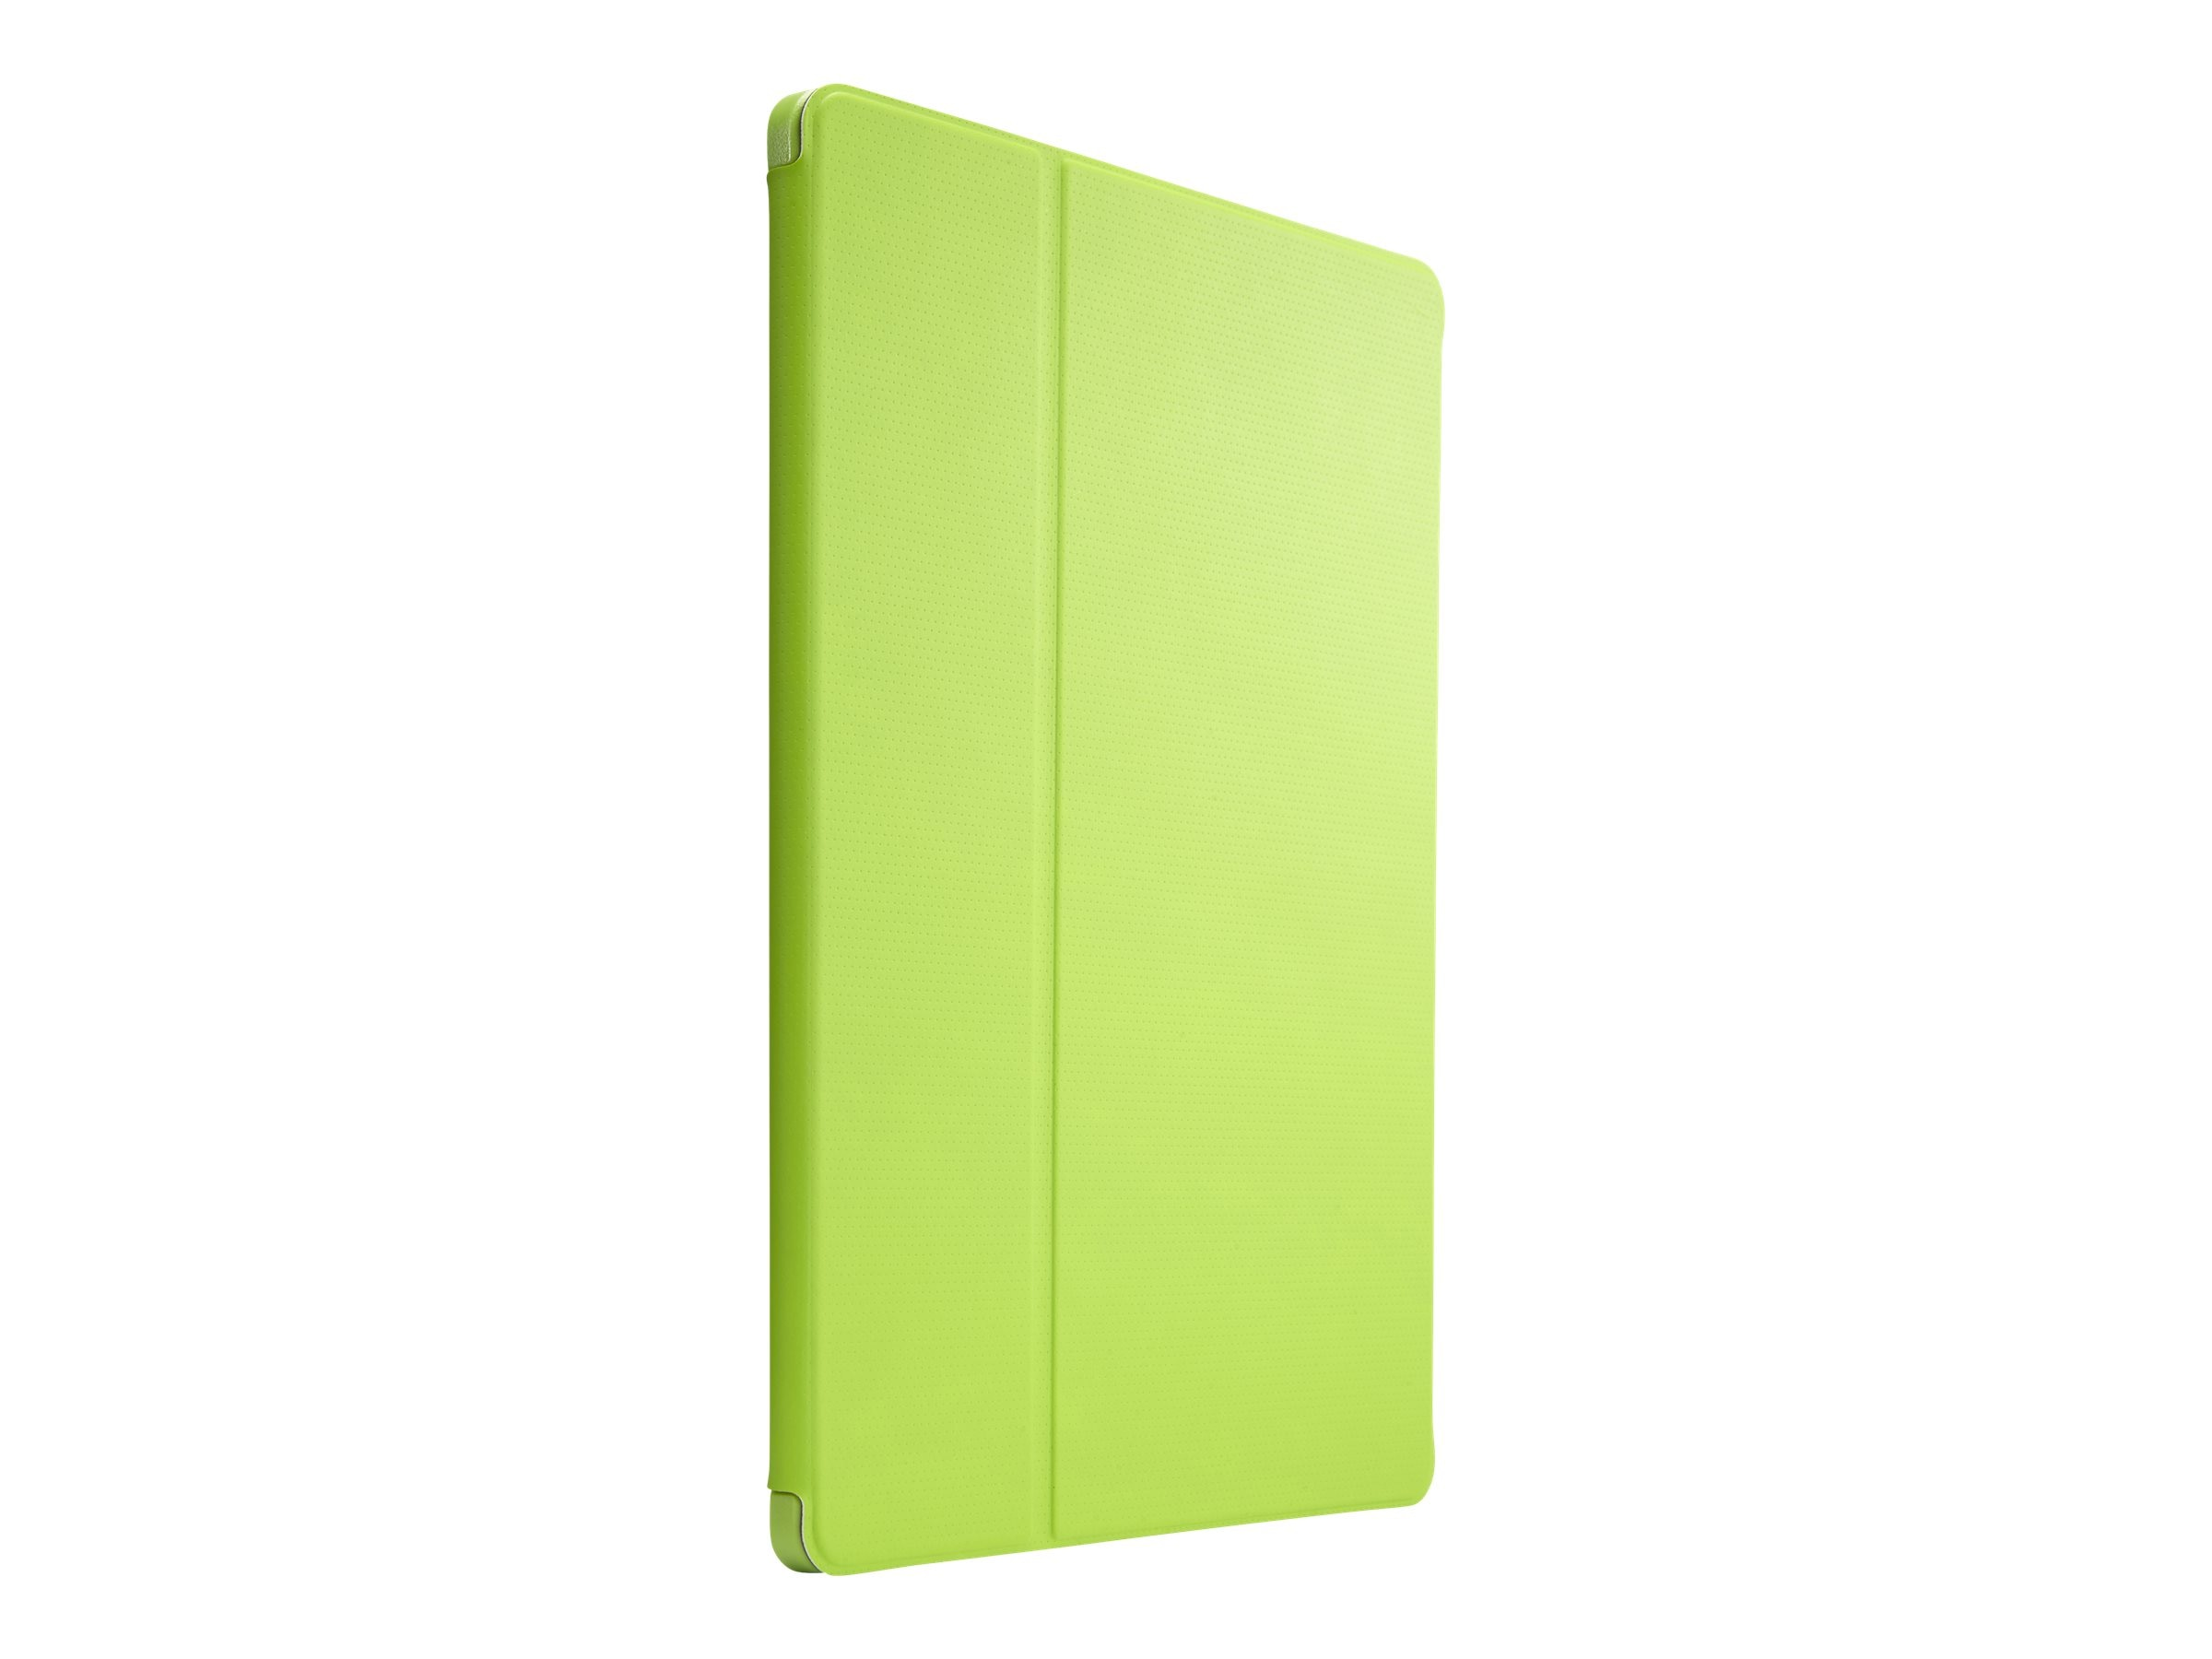 Case Logic Snapview 2.0 Case for iPad Air 2, Lime Green, CSIE-2139LIMEGREEN, 18356937, Carrying Cases - Tablets & eReaders